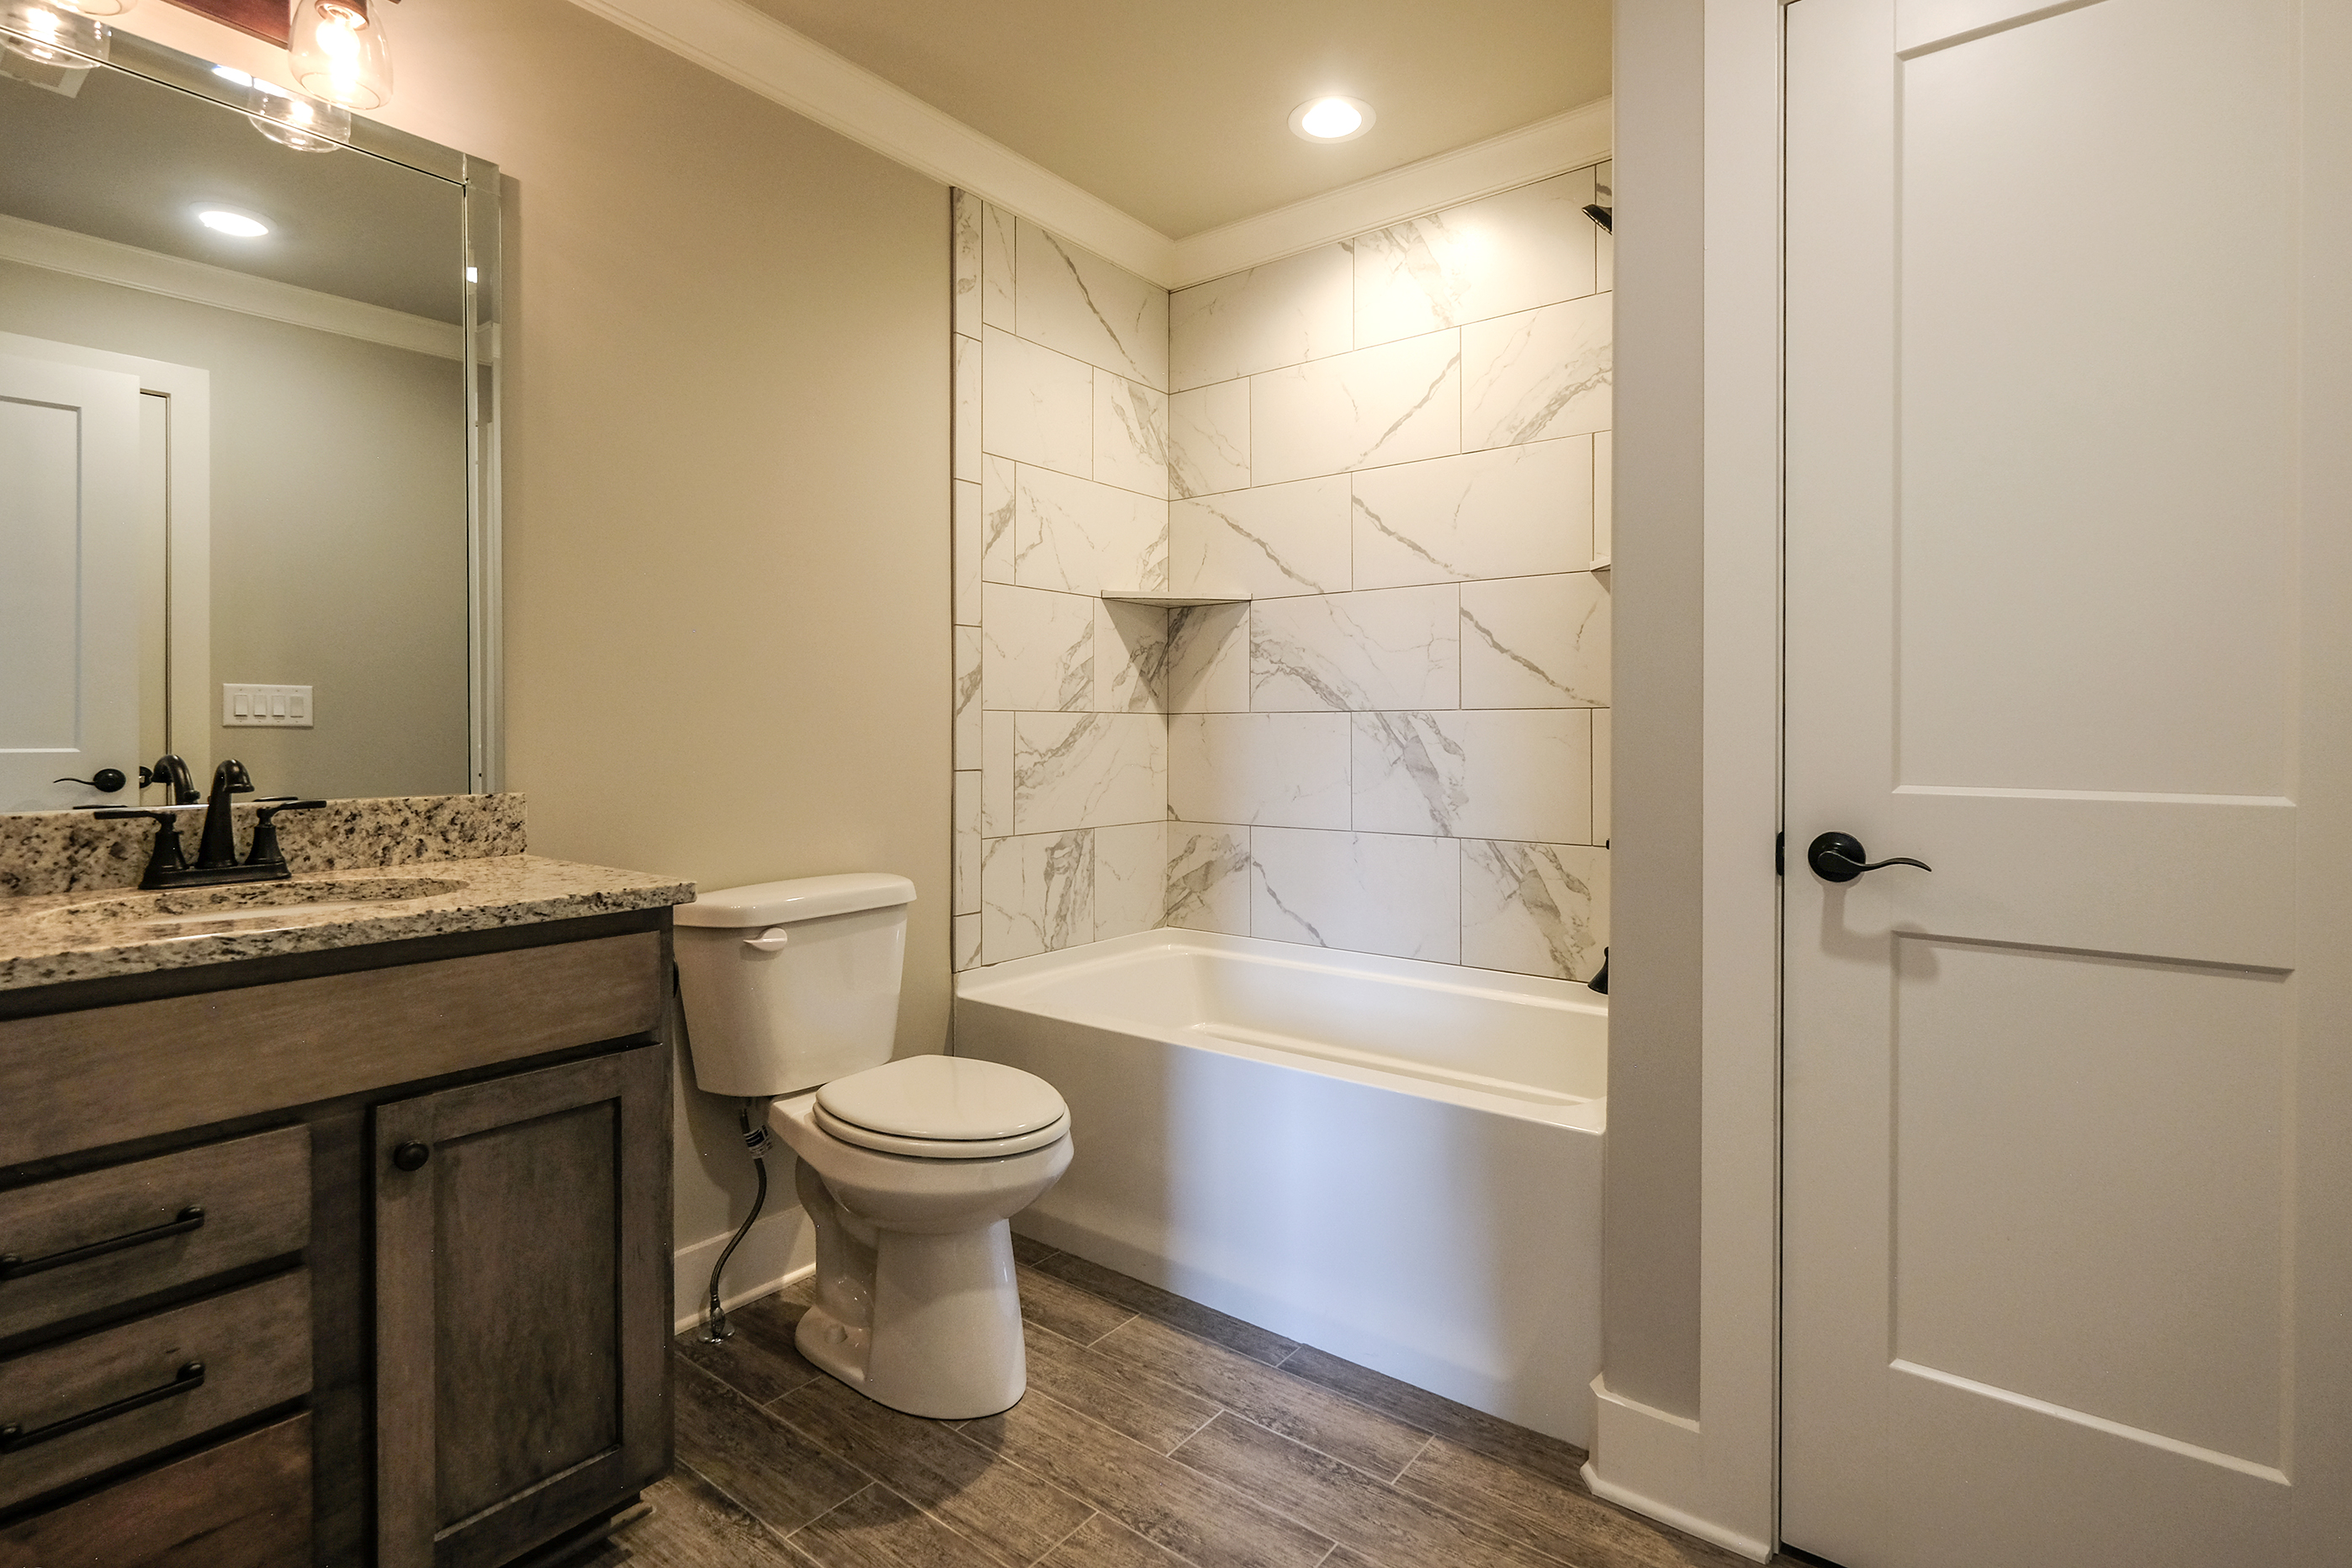 Secondary bath lot 276 AR